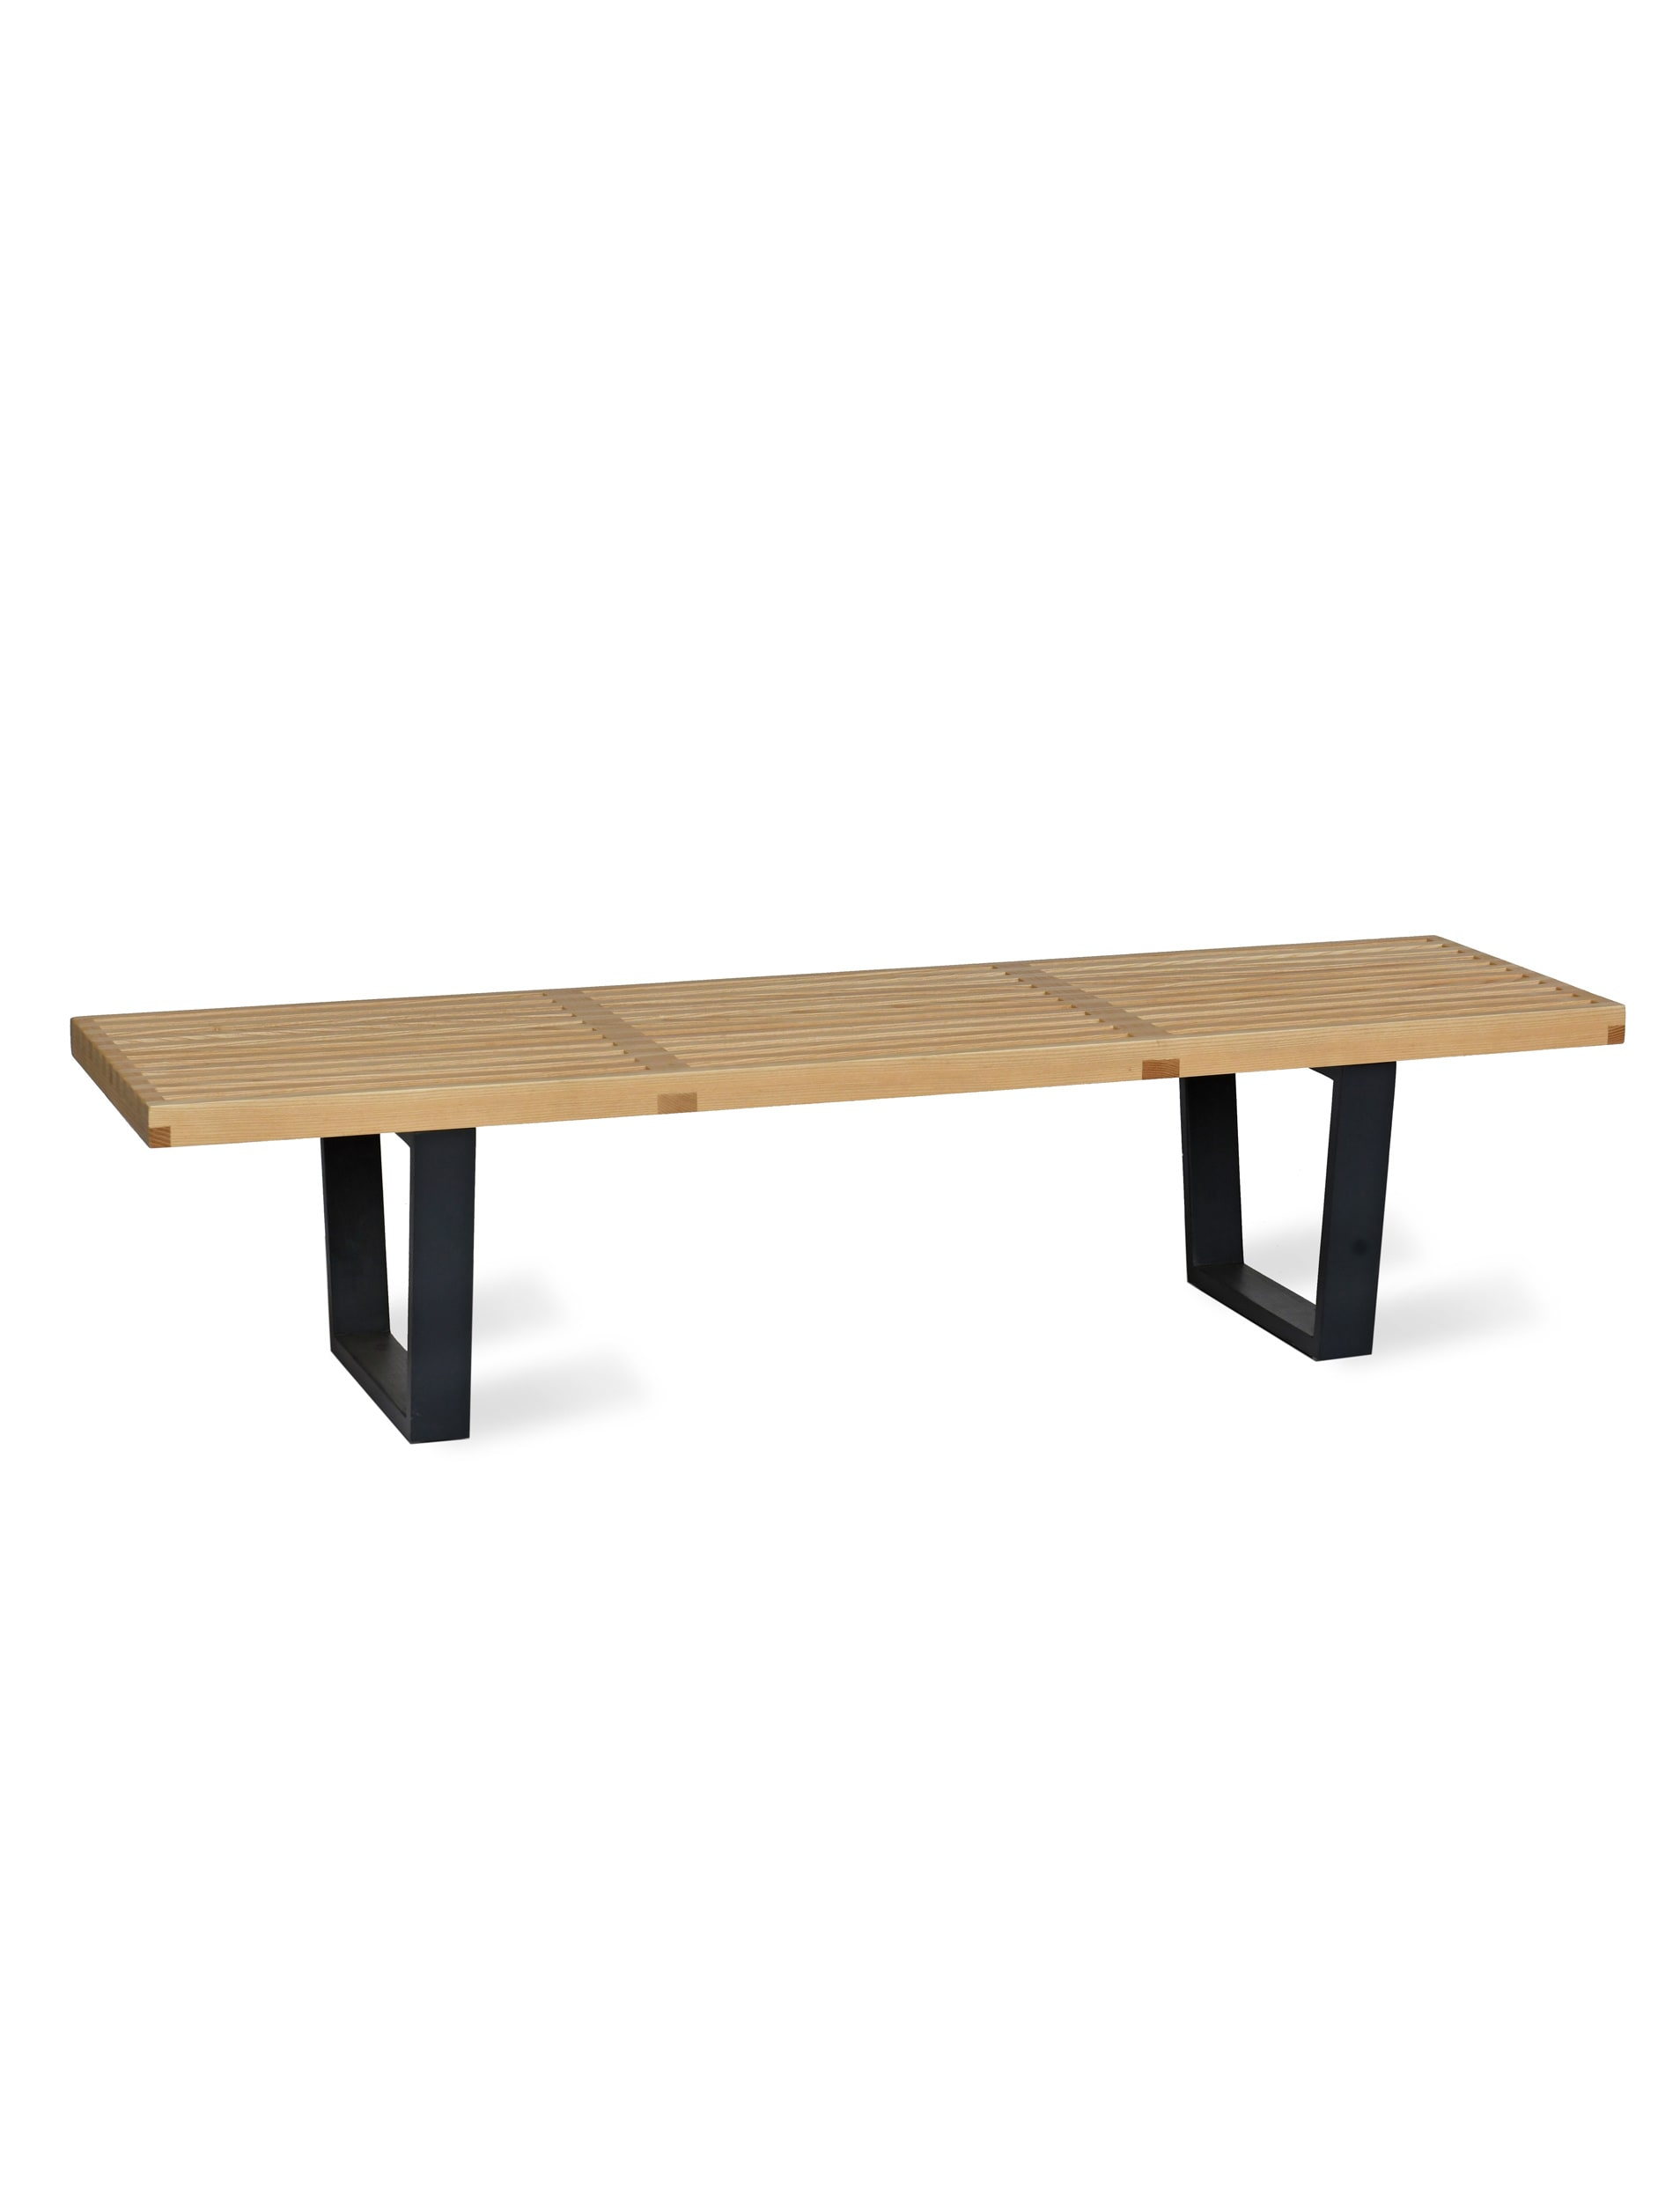 Wooden Linear Hallway Bench in Black | Garden Trading